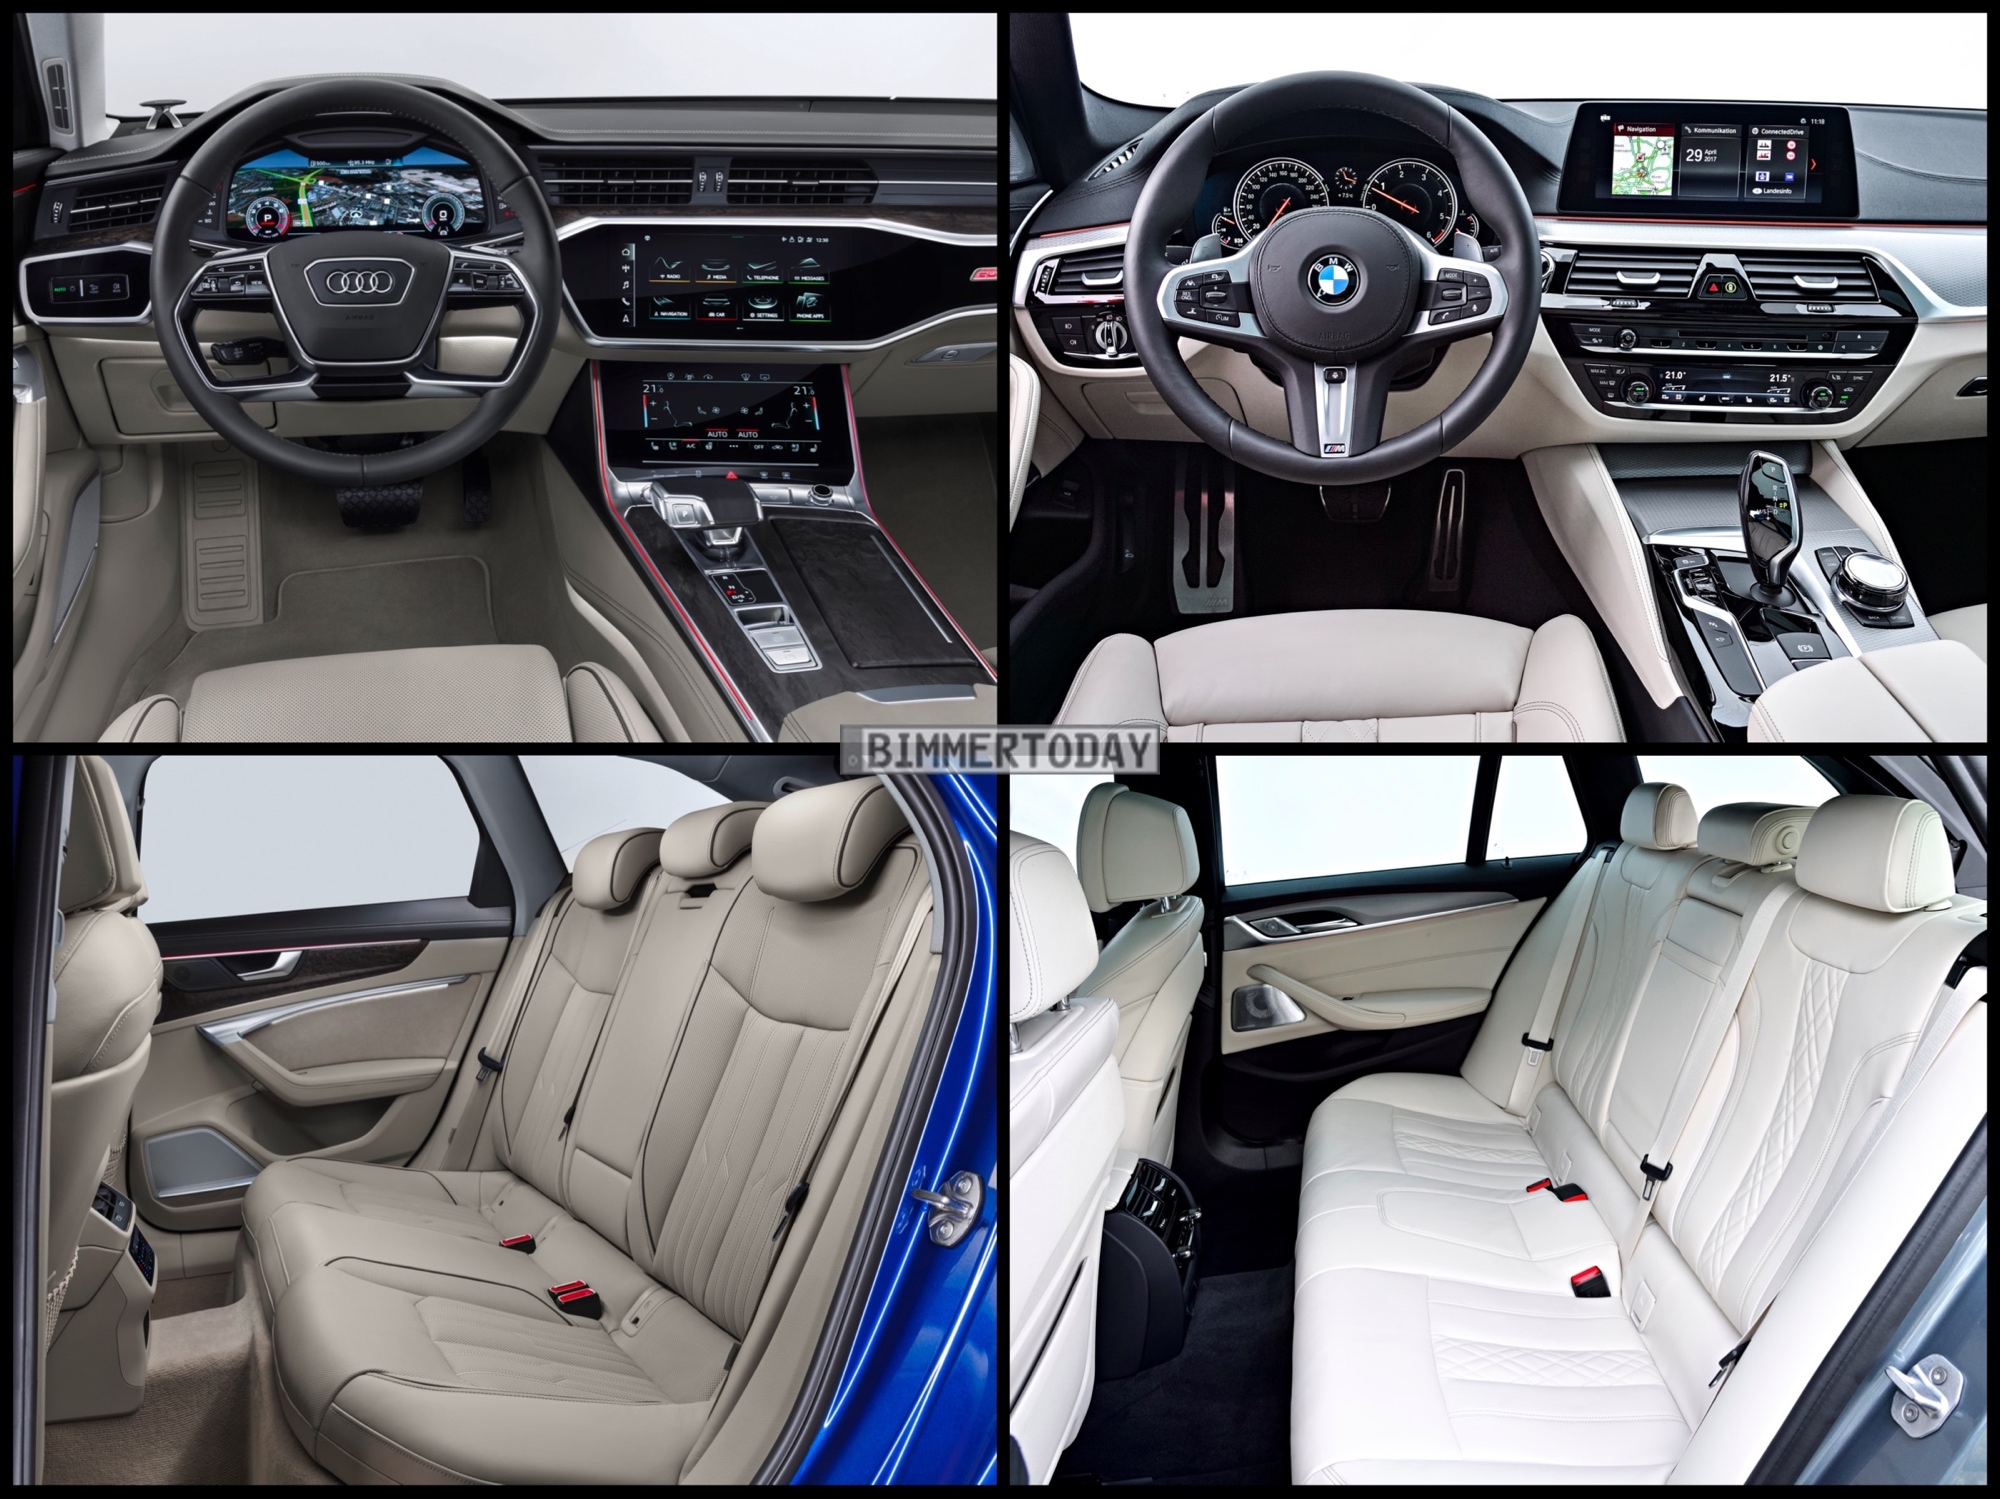 Photo Comparison Bmw 5 Series Touring Vs Audi A6 Avant And On That Really Unfair Bombshell The Wins